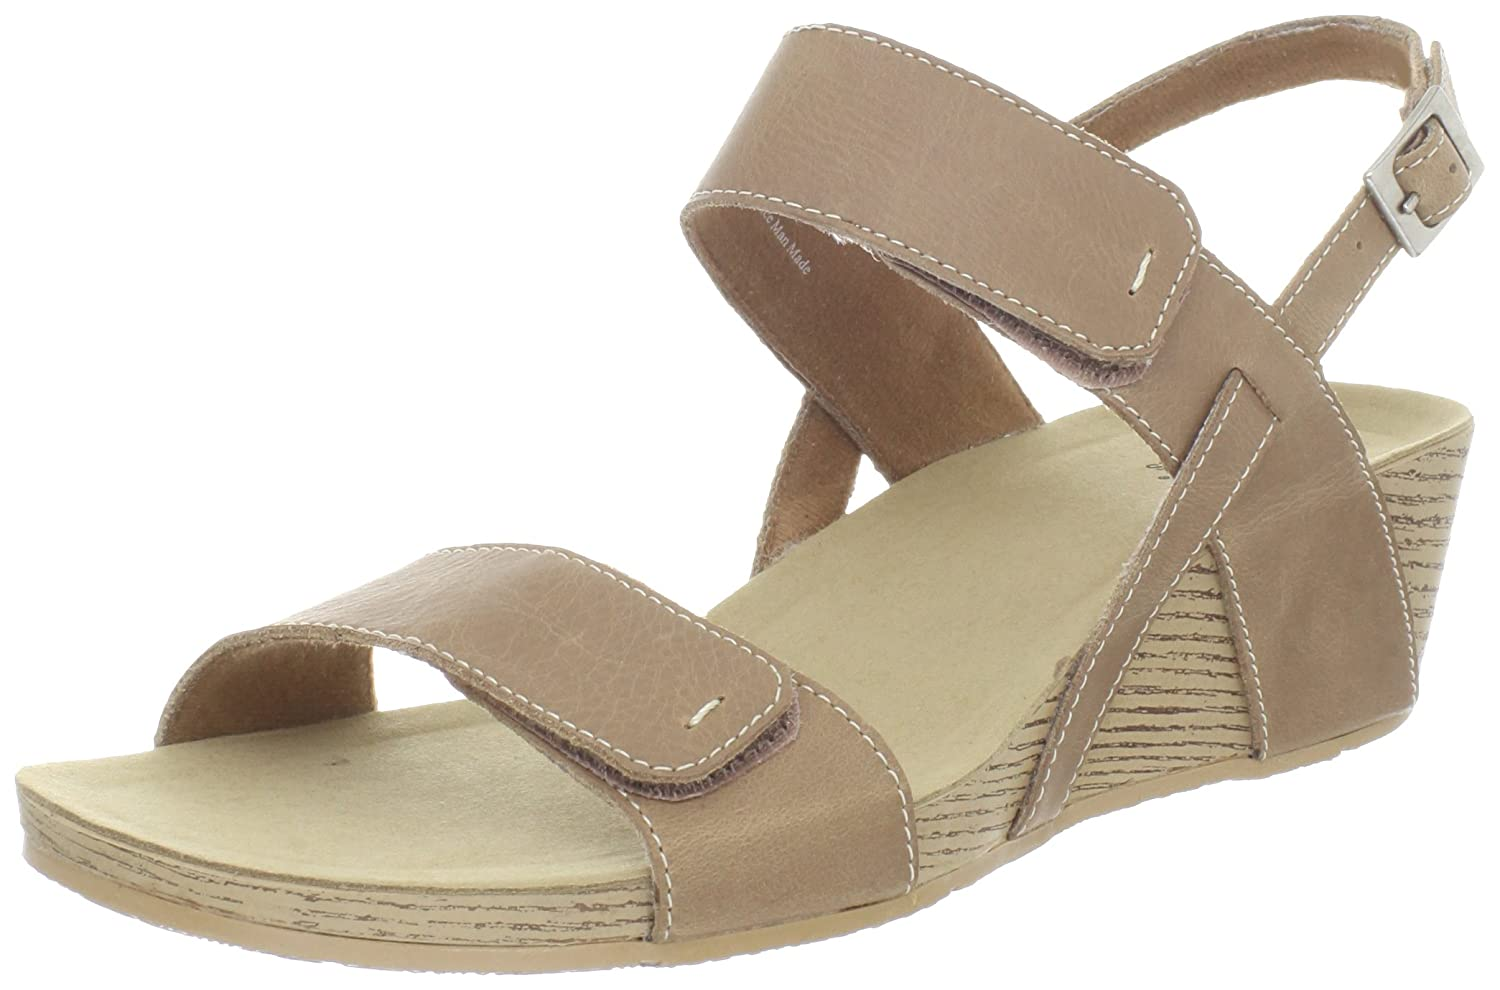 Amazon.com | Clarks Women's Clarks Alto Disco Wedge Sandal, Beige, 9 M US |  Platforms & Wedges